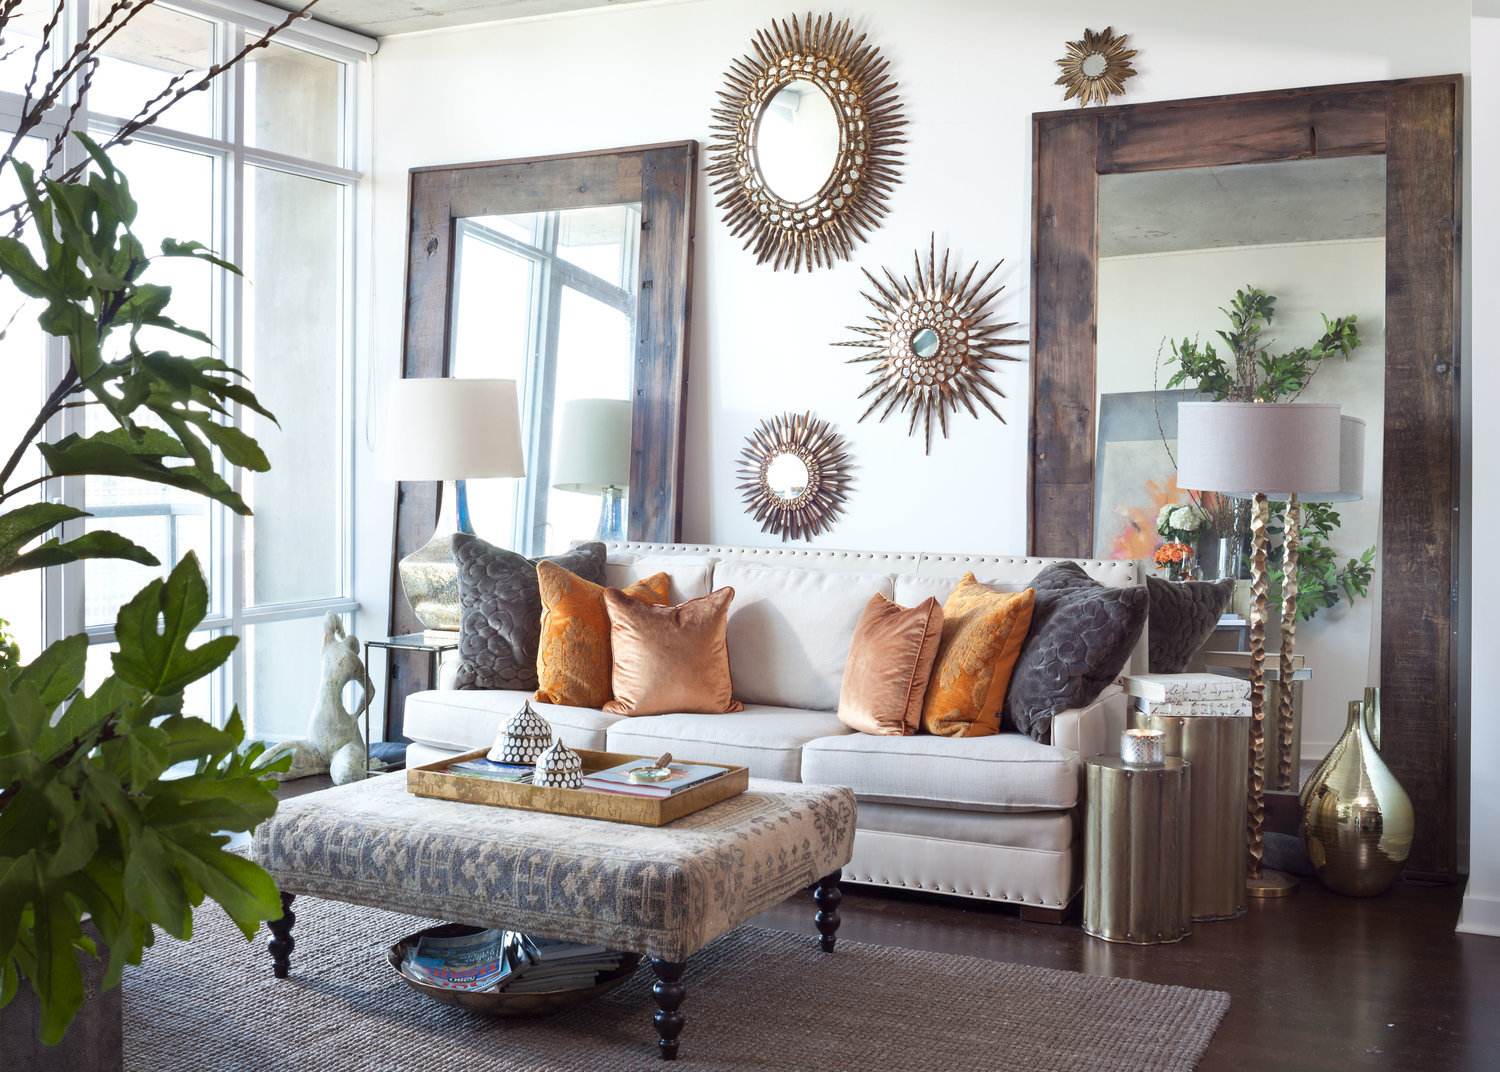 Interior Decorator Denver about post 31 interiors | denver interior designer | home